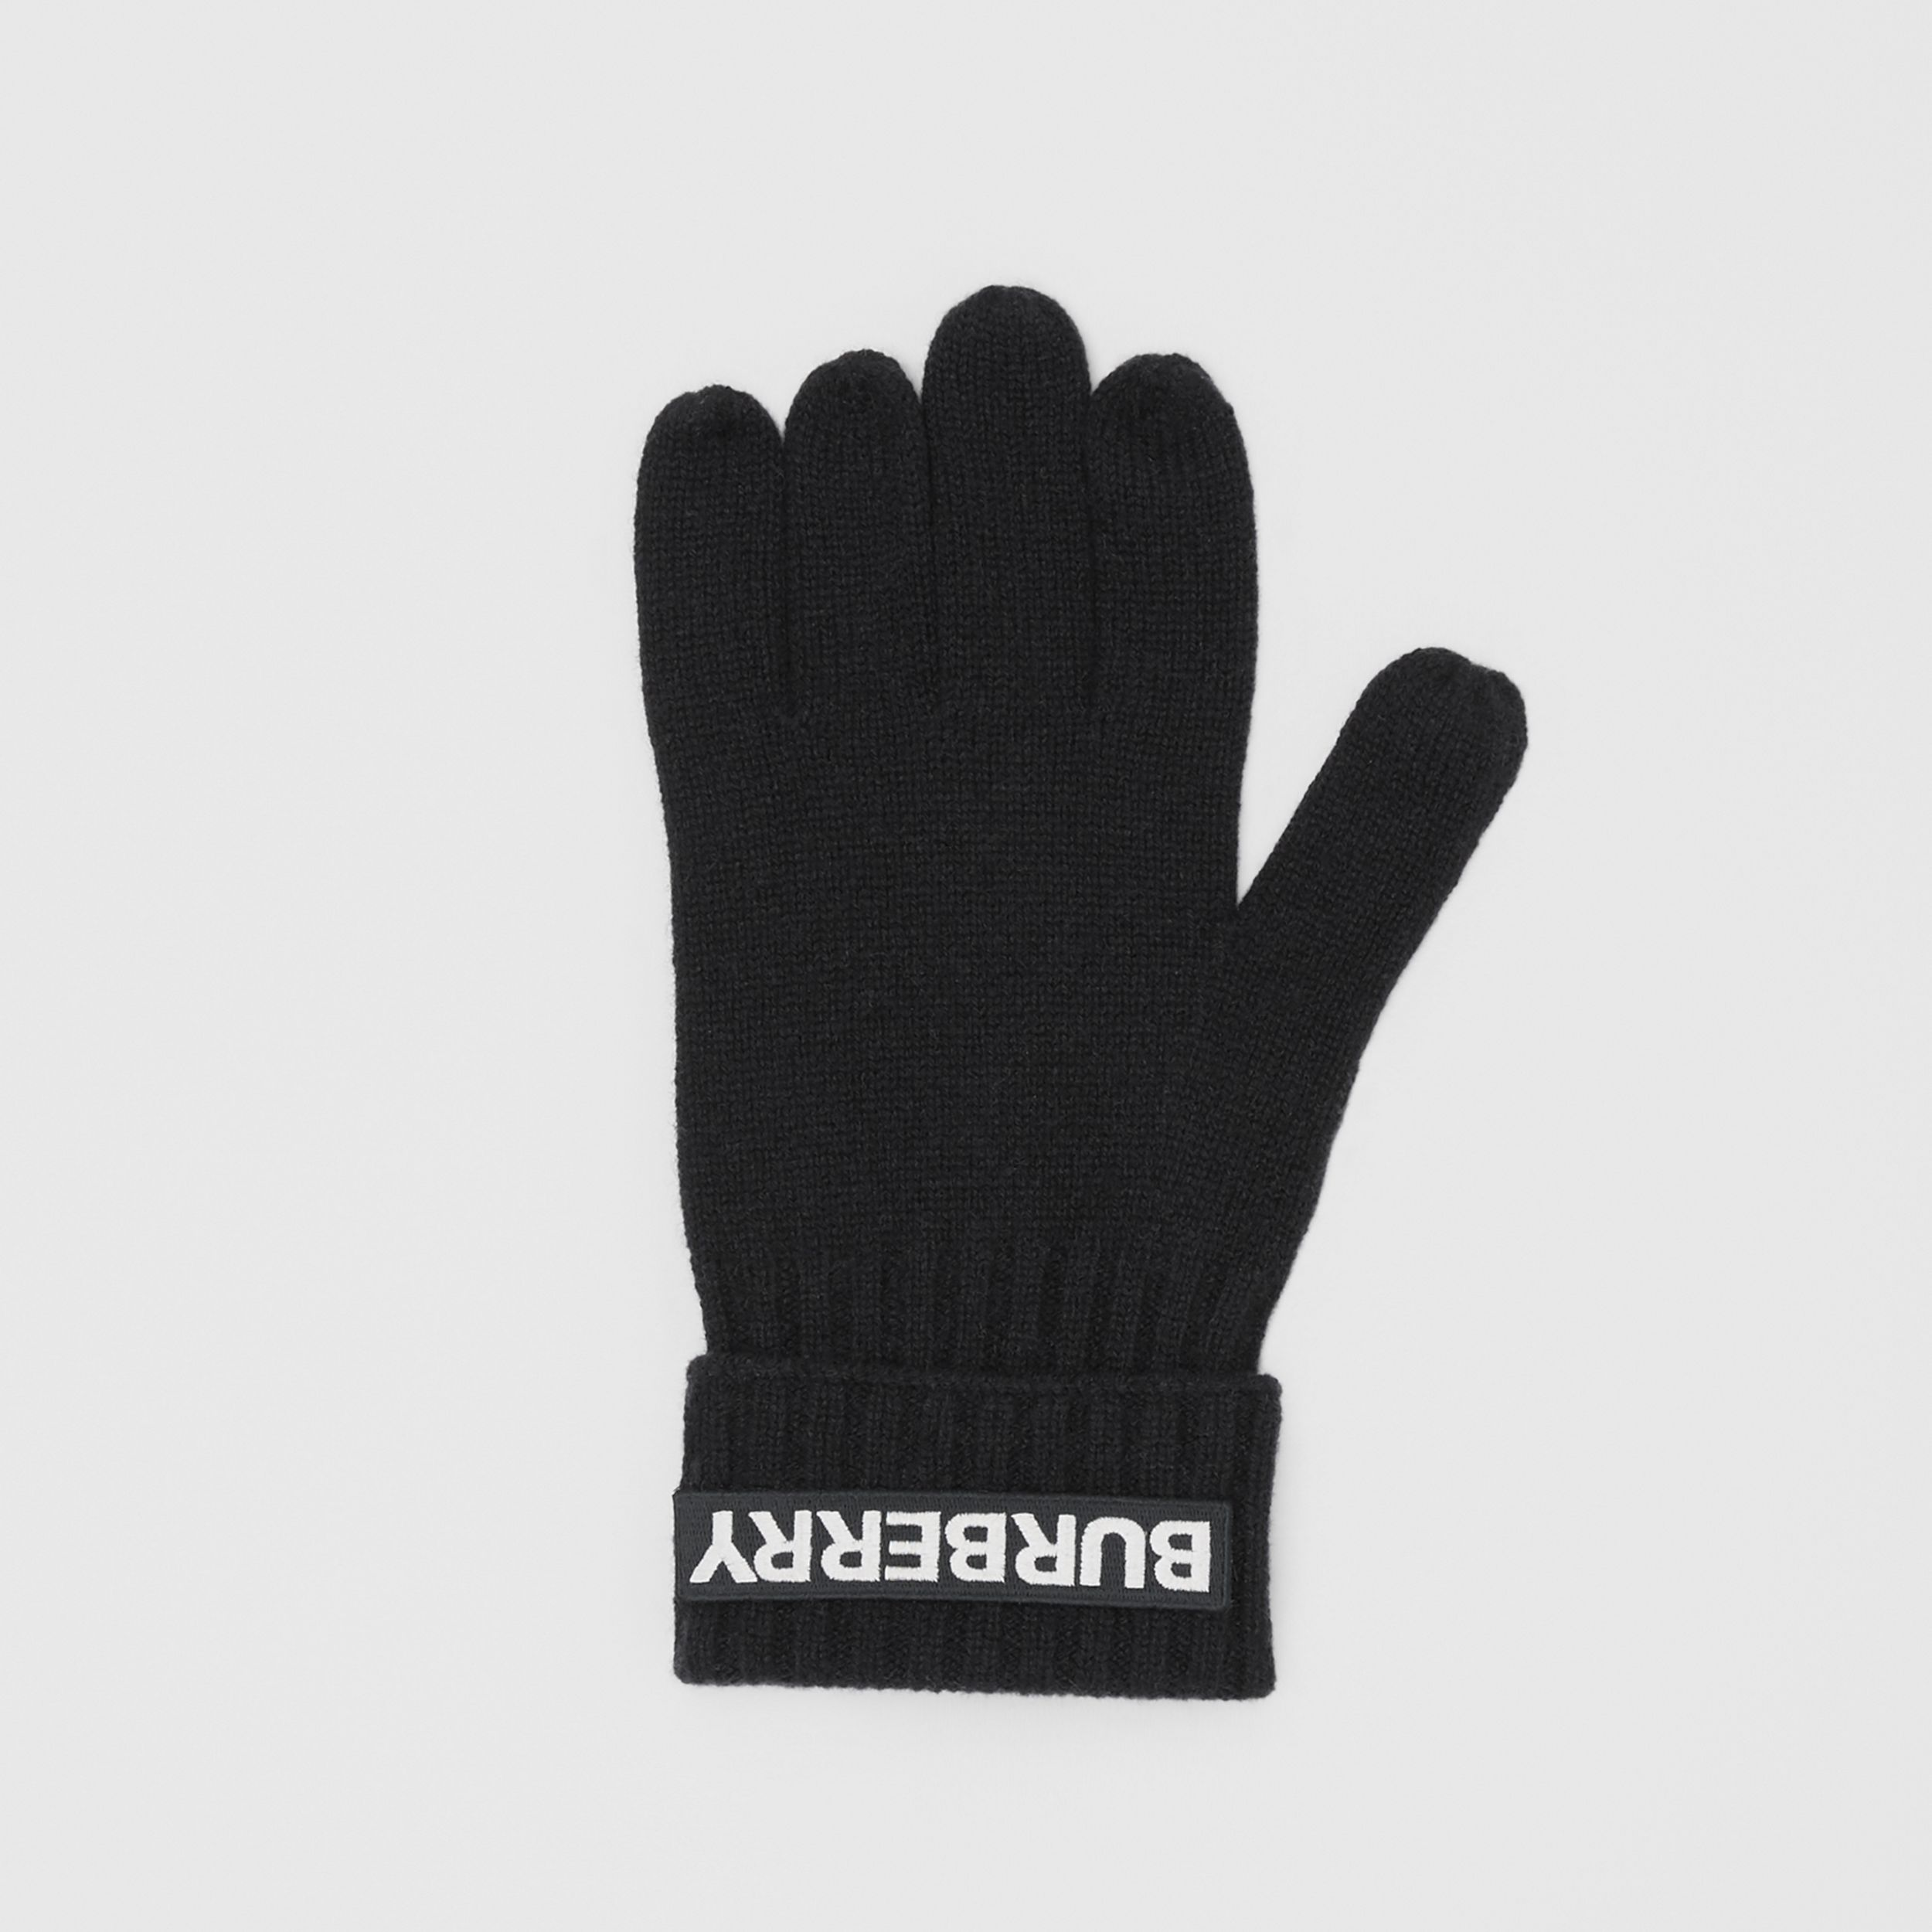 Kingdom and Logo Appliqué Cashmere Gloves in Black | Burberry - 3